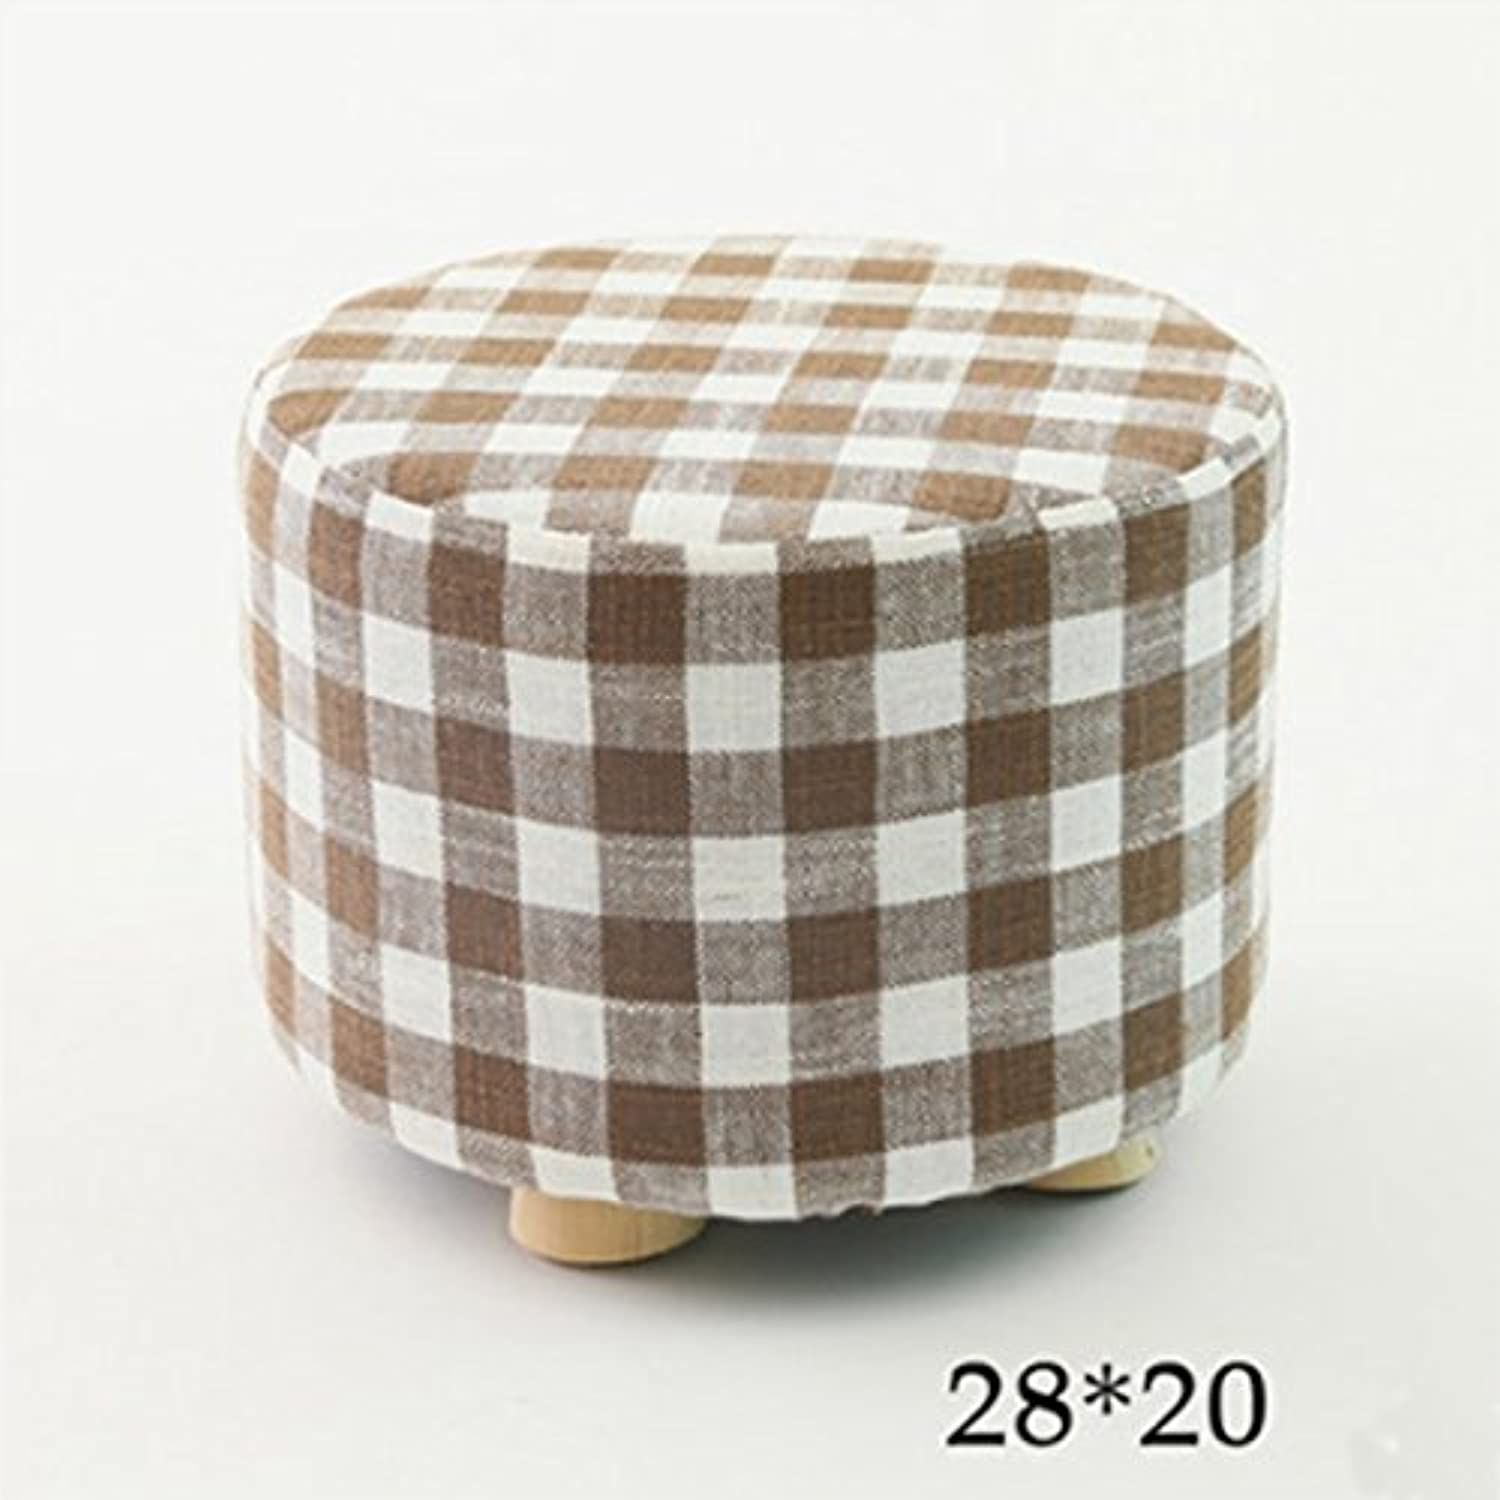 Dana Carrie Stool Home Stylish Creative Wooden Sofa Chair Fabrics on a Low stool for shoes is a Small Living Room Benches Home, Grid